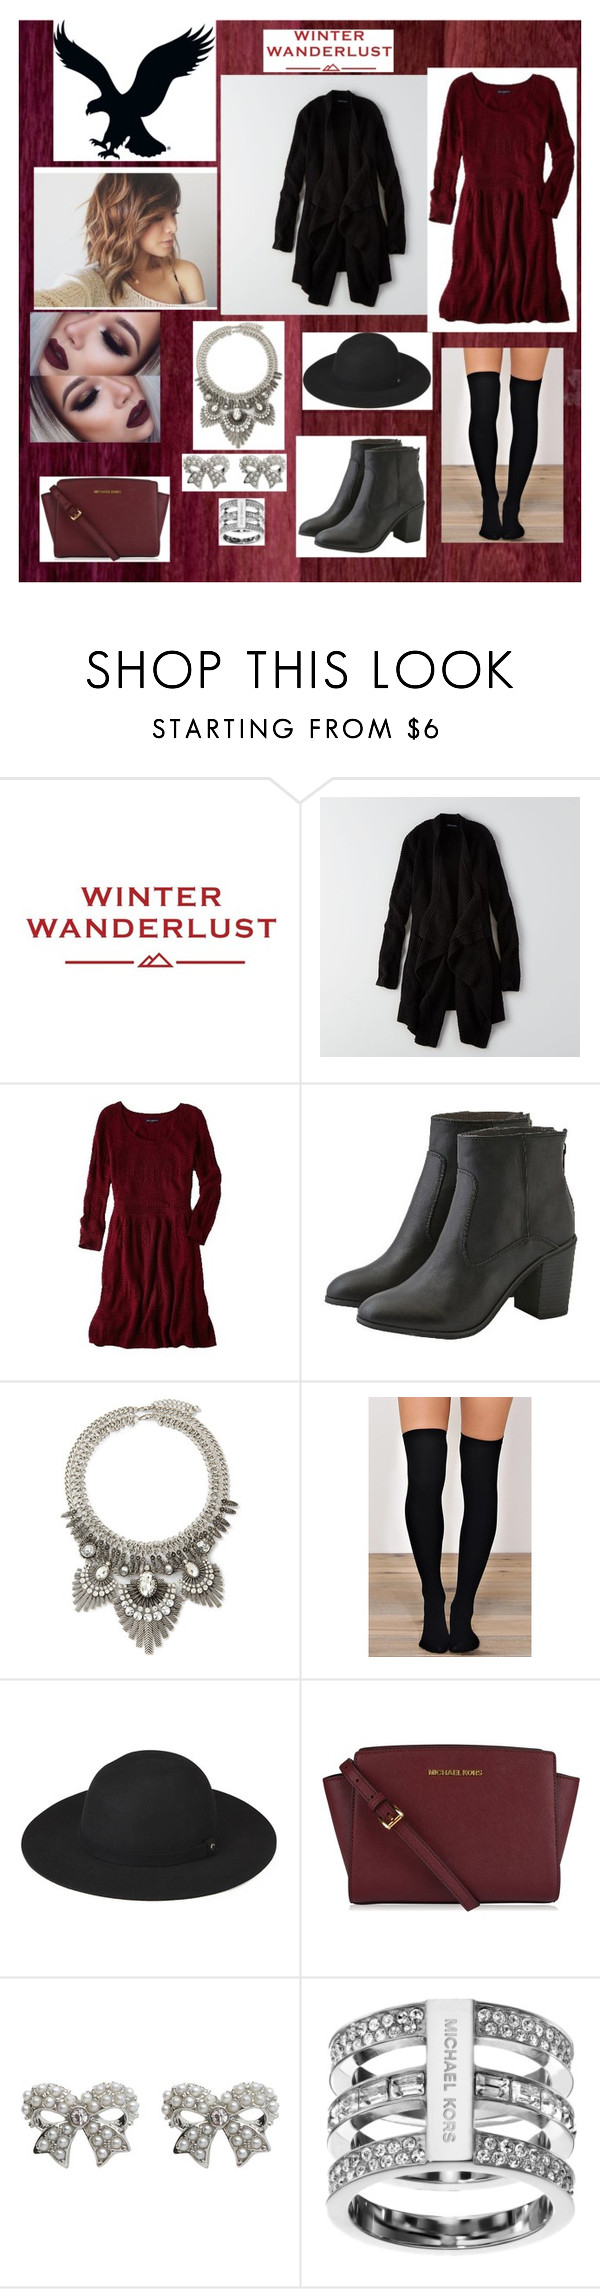 """Winter Wanderlust with American Eagle: Contest Entry"" by babylaci ❤ liked on Polyvore featuring American Eagle Outfitters, Forever 21, Whistles, M&Co, Michael Kors and aeostyle"